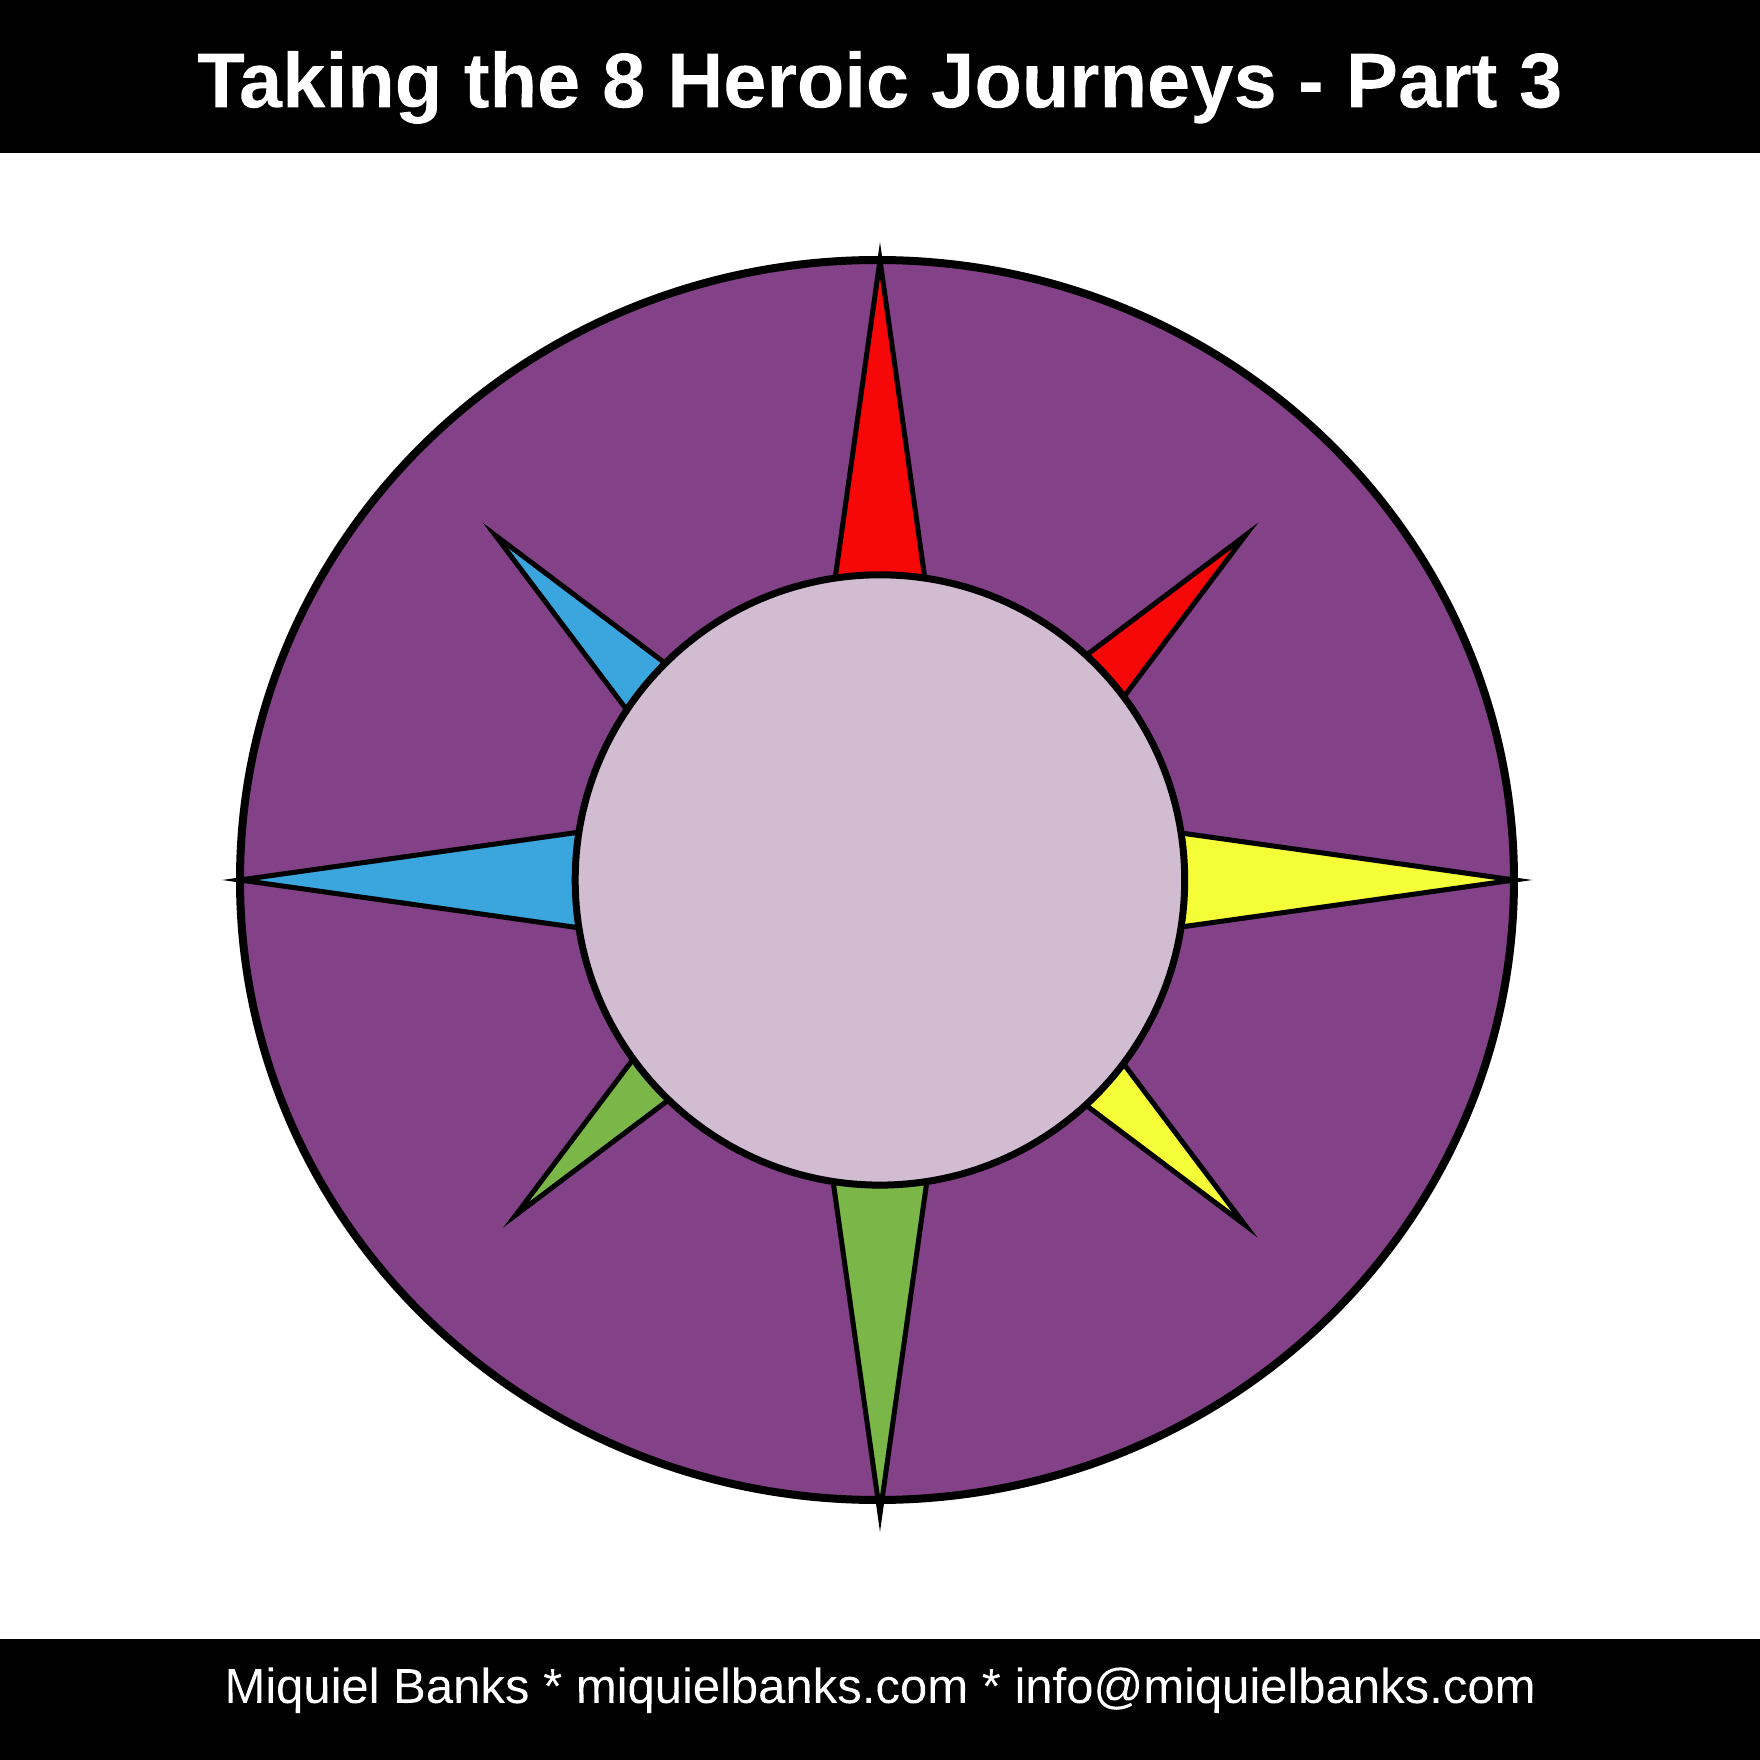 Blog 13 - Heroic Journey for Women and Men - Page 3 - 8 Journeys 03